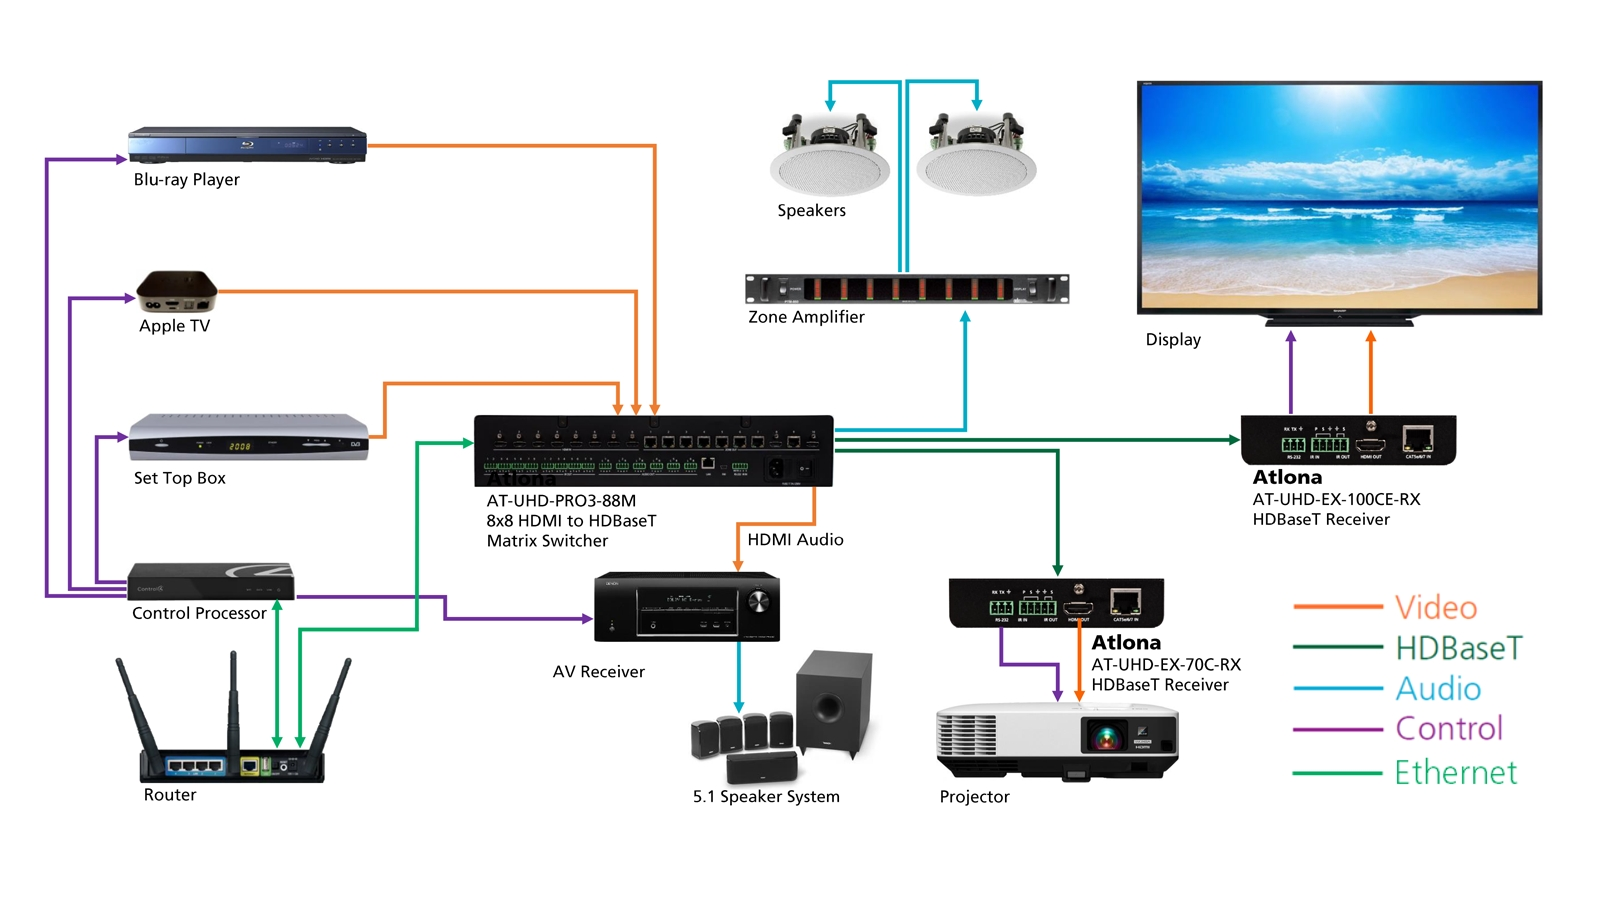 crestron thermostat wiring diagram Download-Crestron Wiring Diagram Elegant 4k Uhd 8x8 Hdmi to Hdbaset Matrix Switcher with Poe 18-q